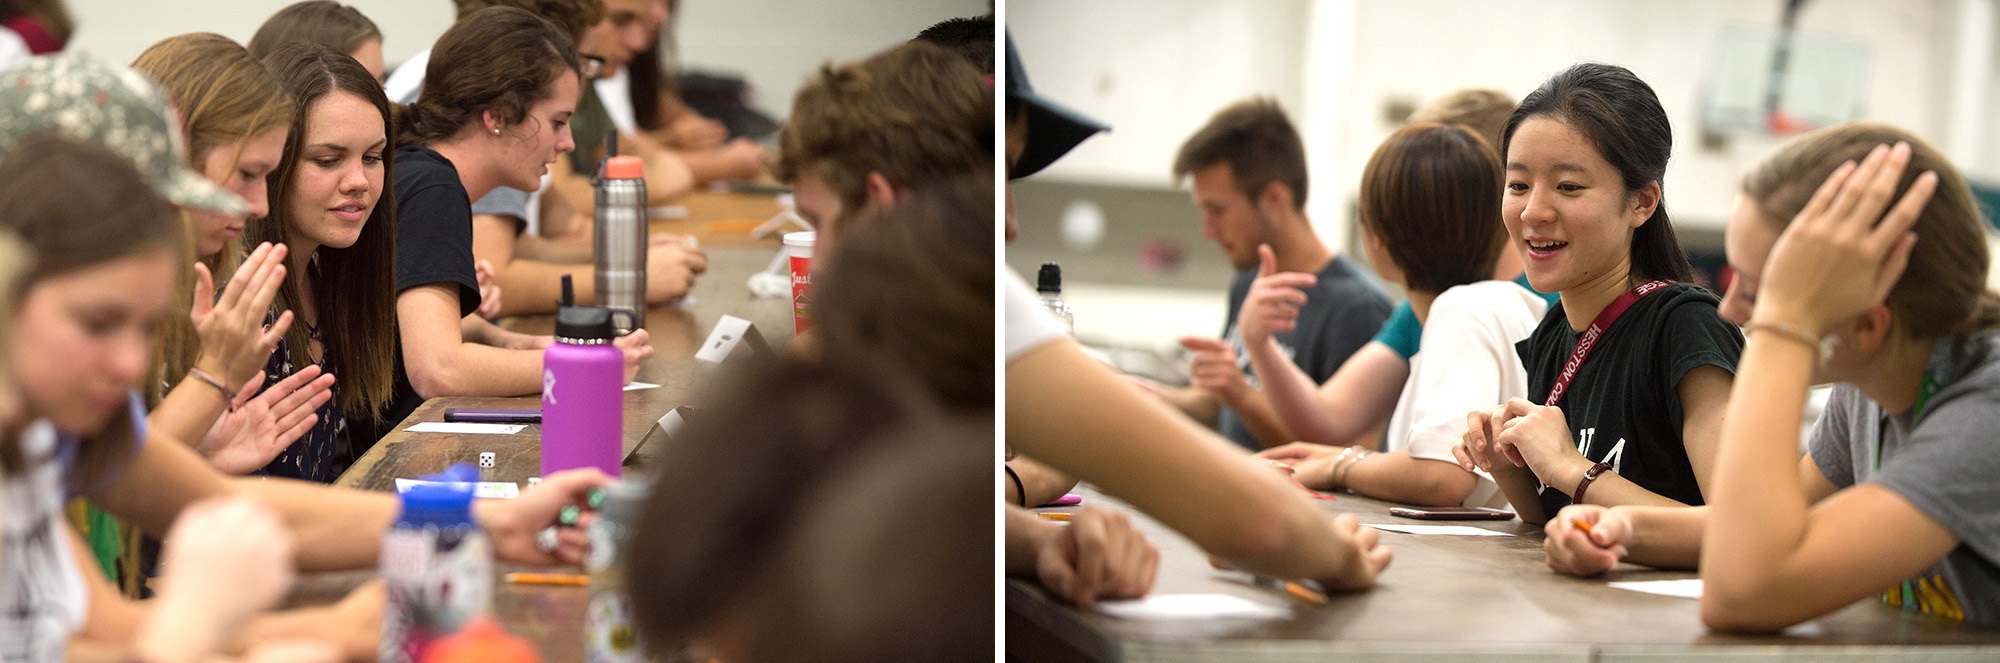 Campus Activities Board sponsored a Bunco game night for students and young alumni during Homecoming Weekend.